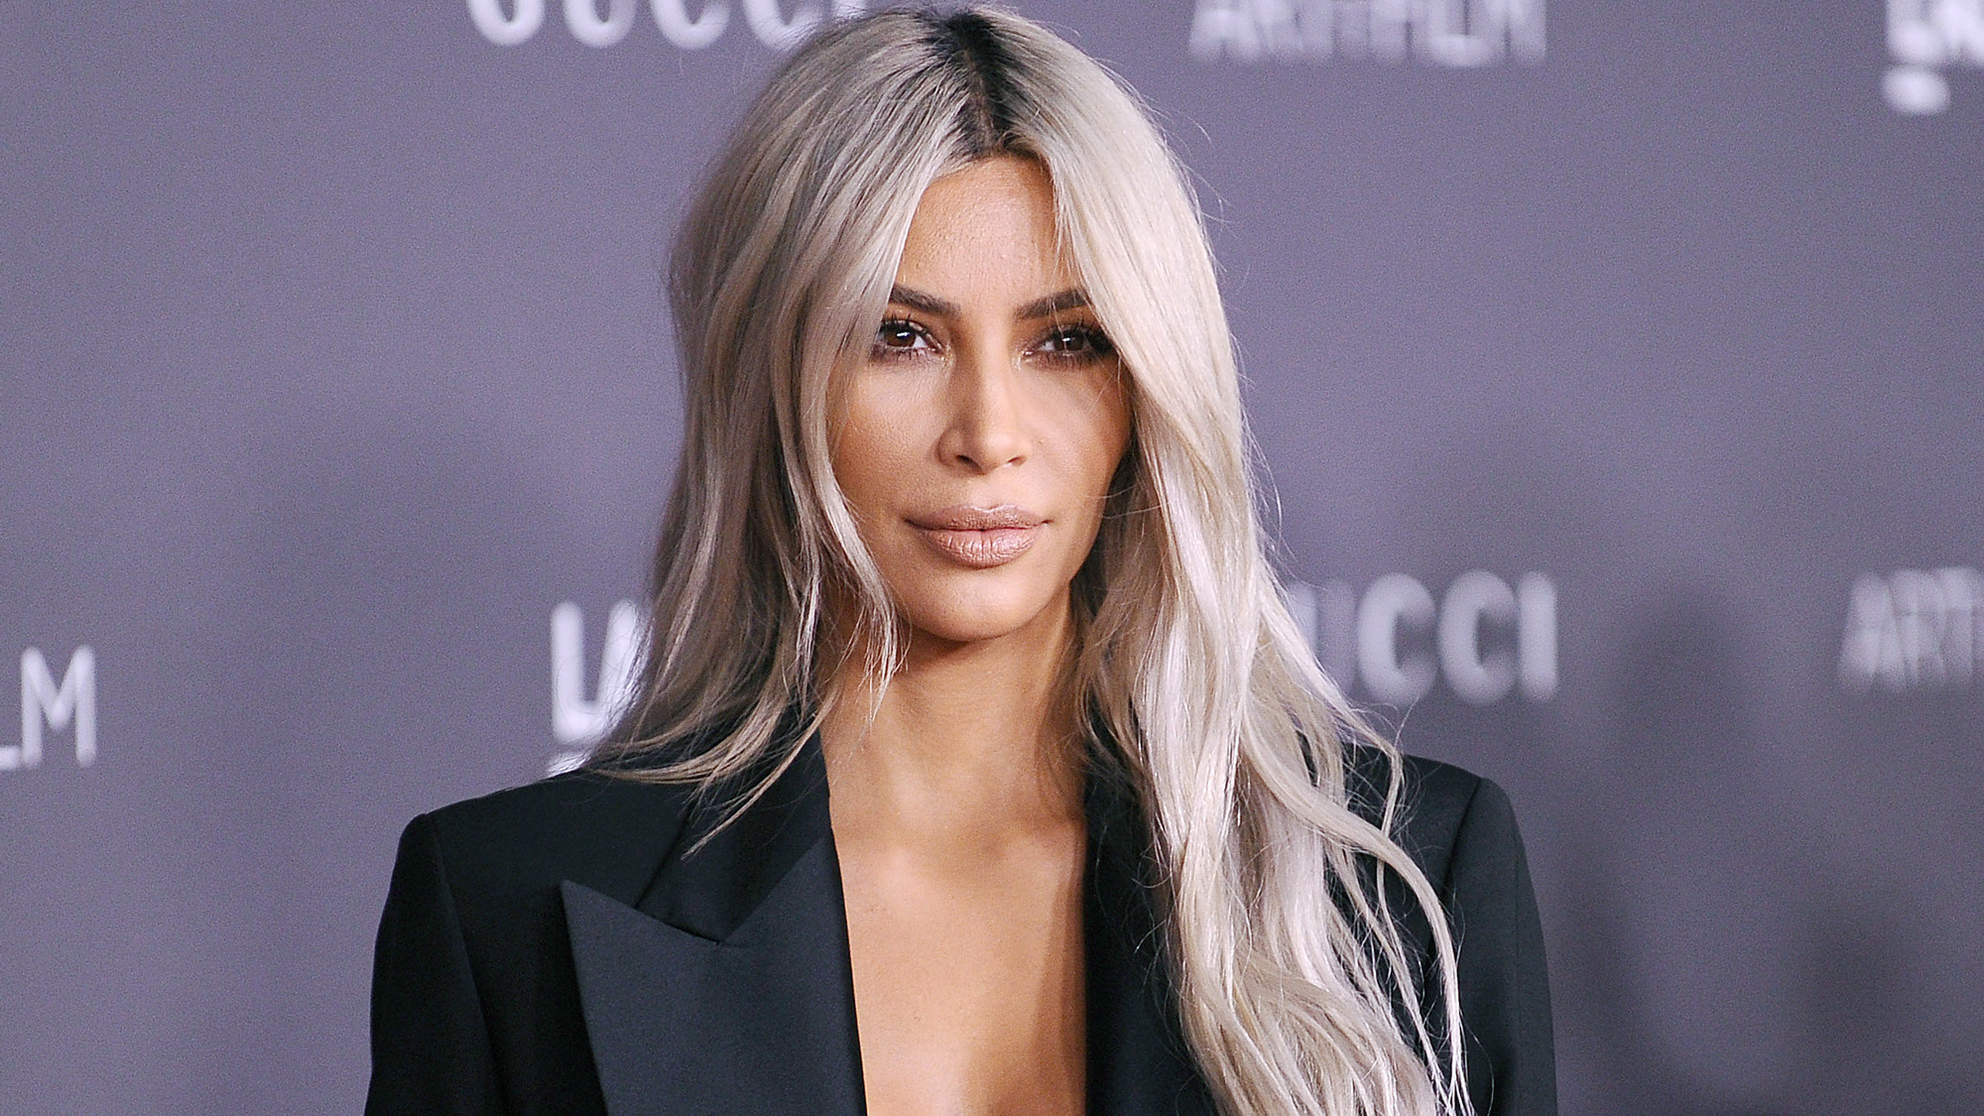 Kim Kardashian Opens Up About Losing An Embryo, Feeling 'So Grateful' for Her Surrogate